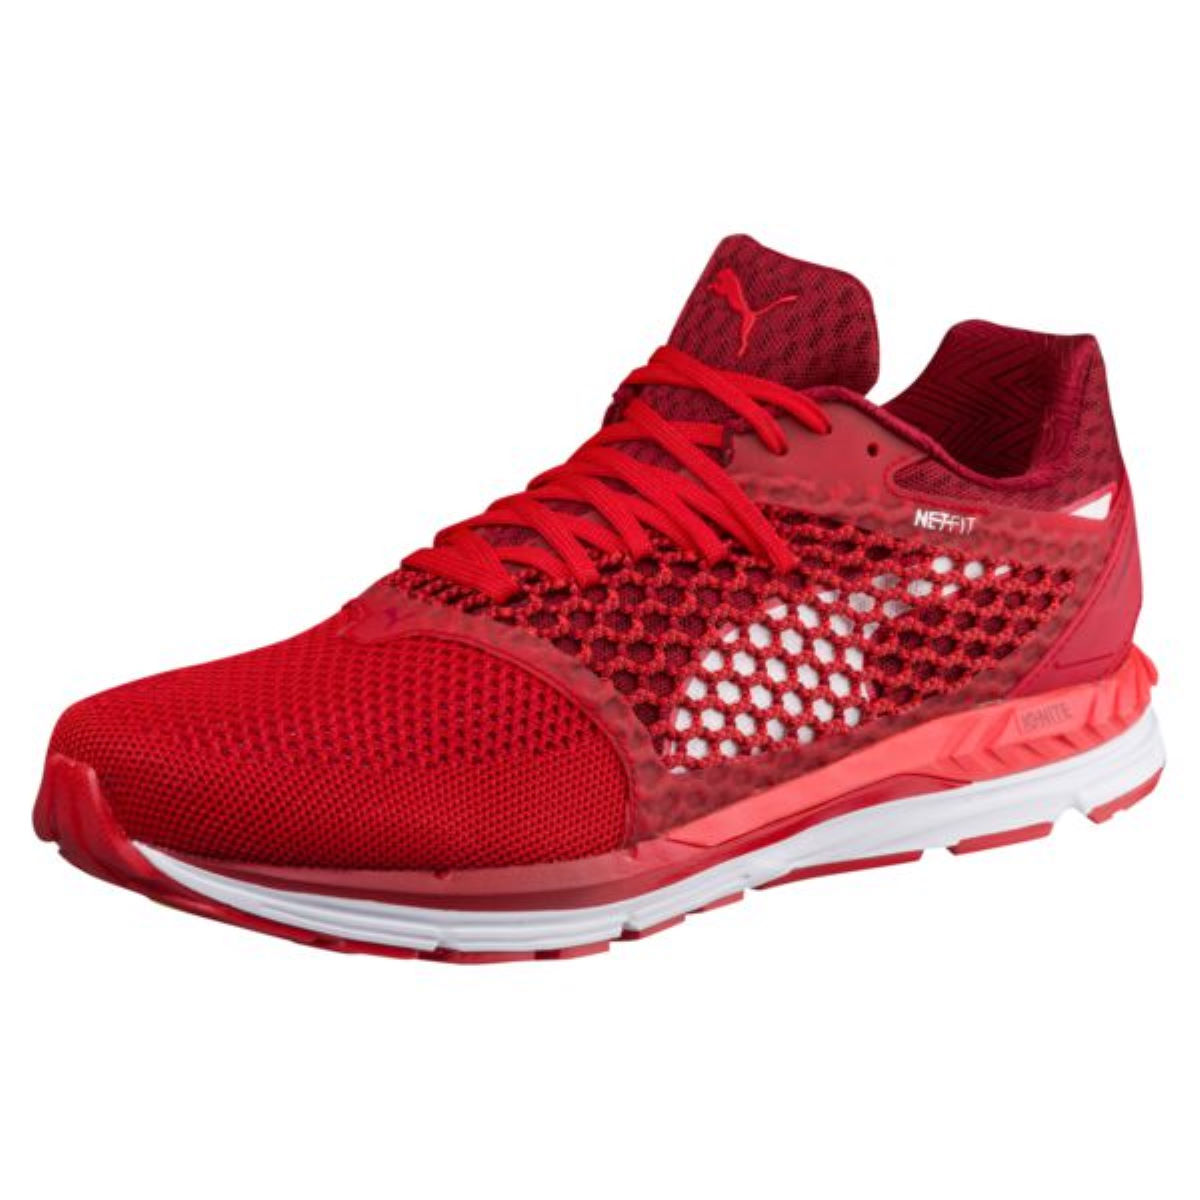 Chaussures Puma Speed 600 Ignite 3 - UK 10 red -white